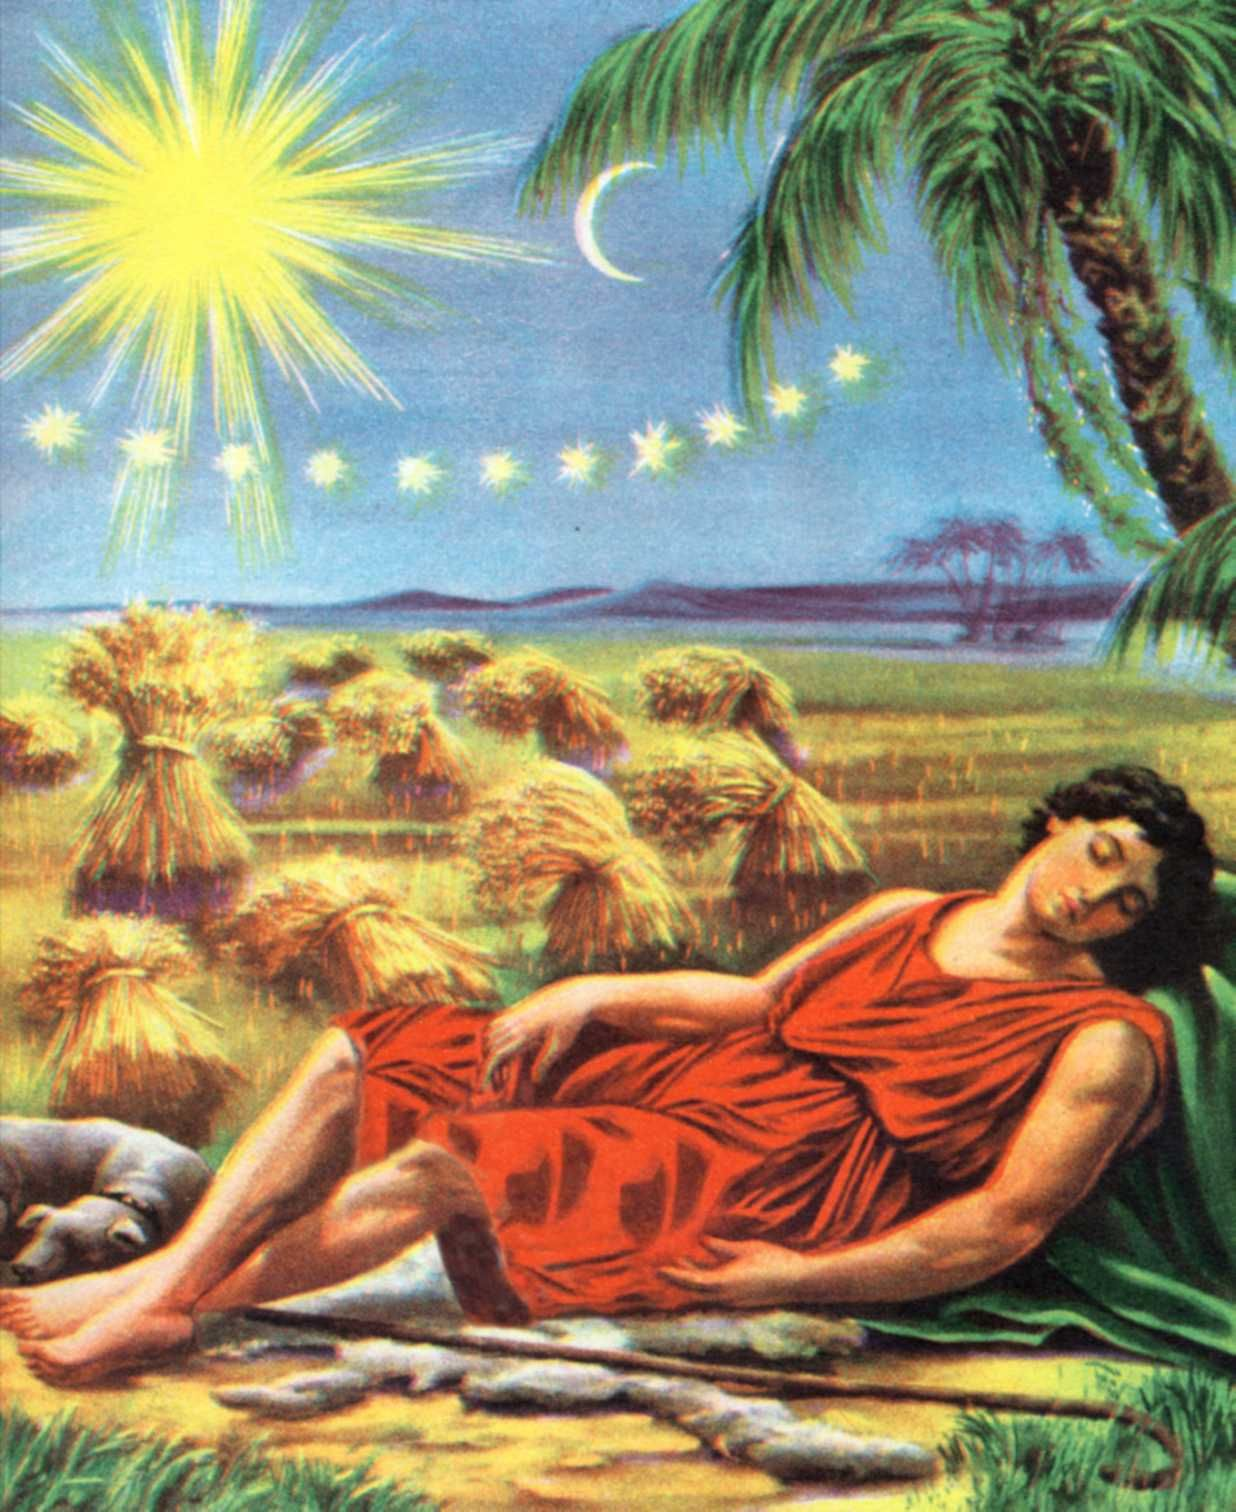 joseph had a dream and when he told it to his brothers